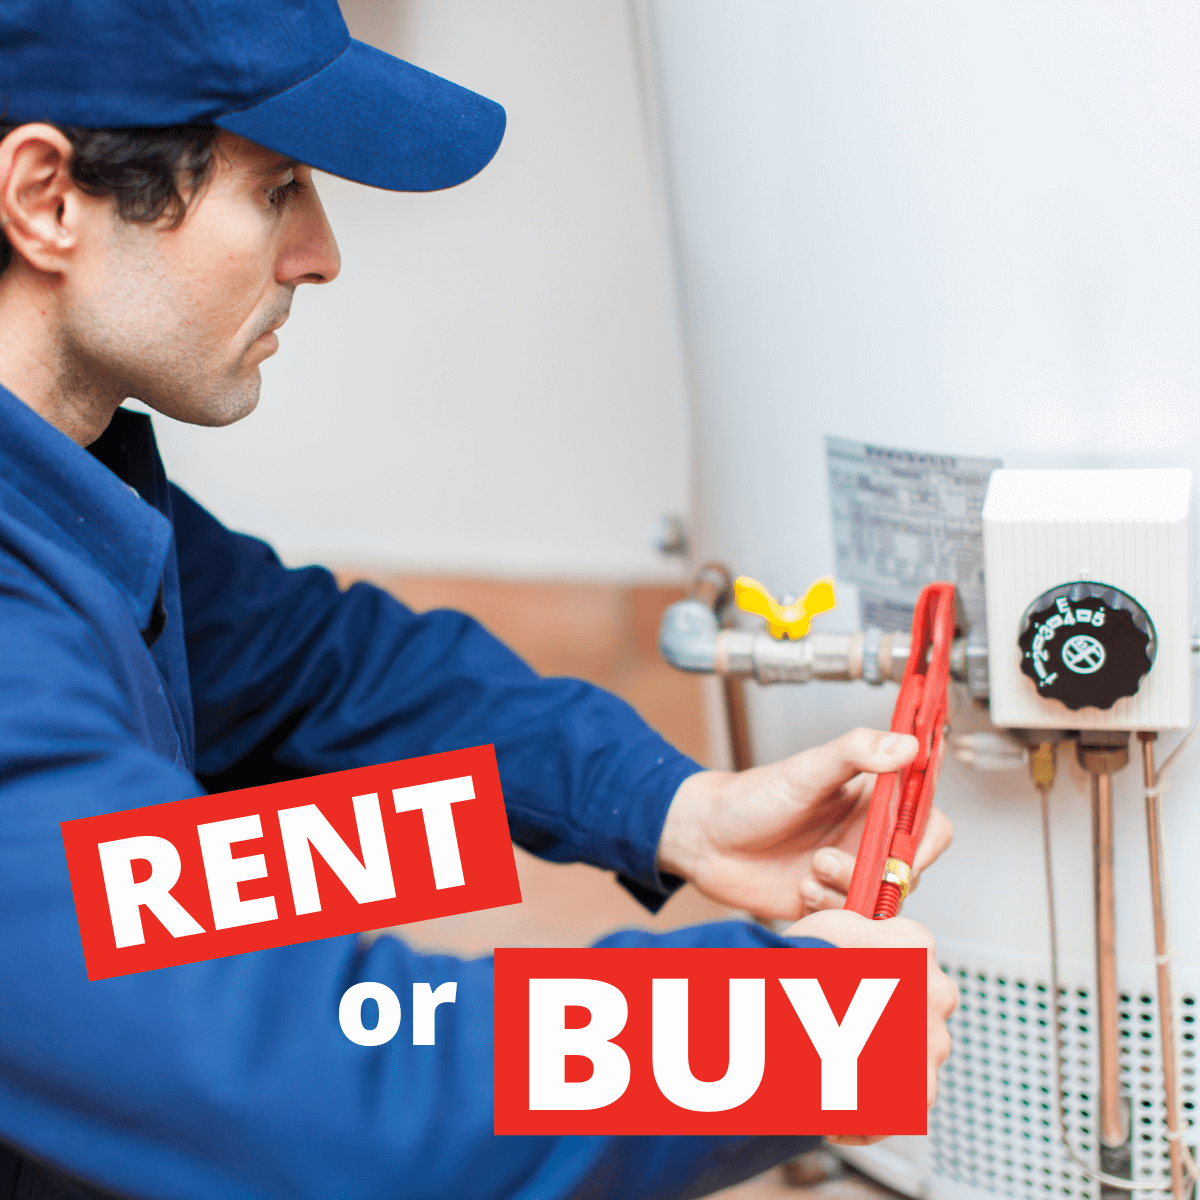 Lookout Are Water Heater Rental Companies Taking Advantage Of Canadians?